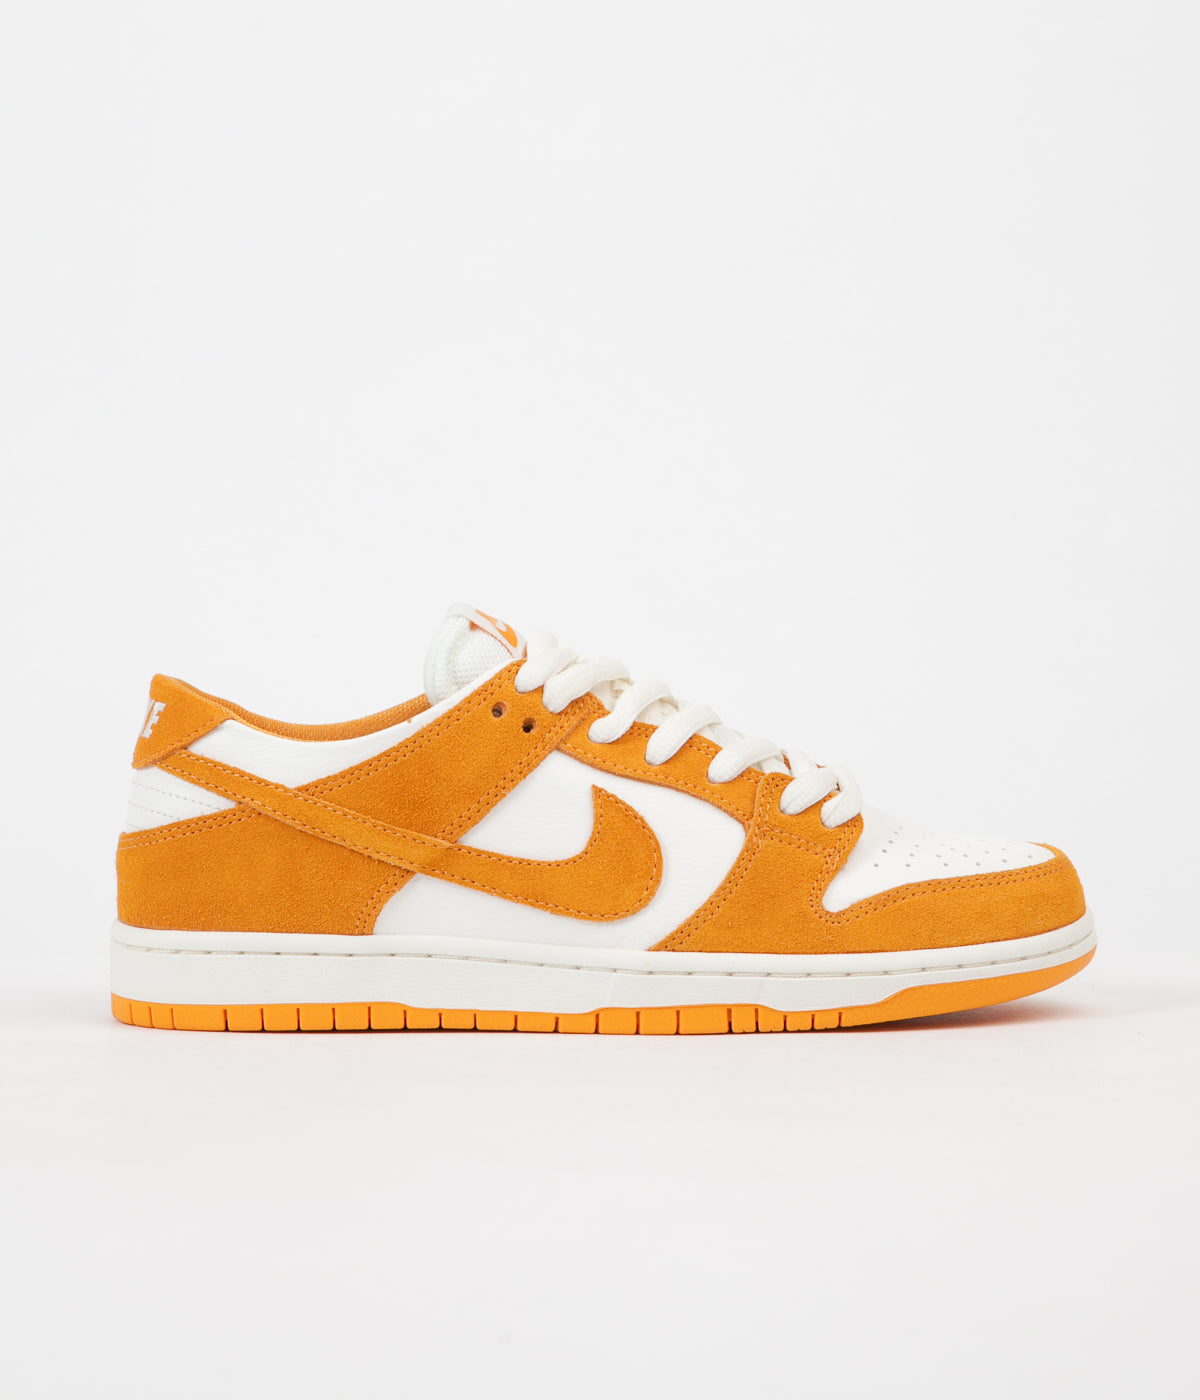 Nike SB Dunk Low Pro Shoes - Circuit Orange / Circuit Orange / Sail